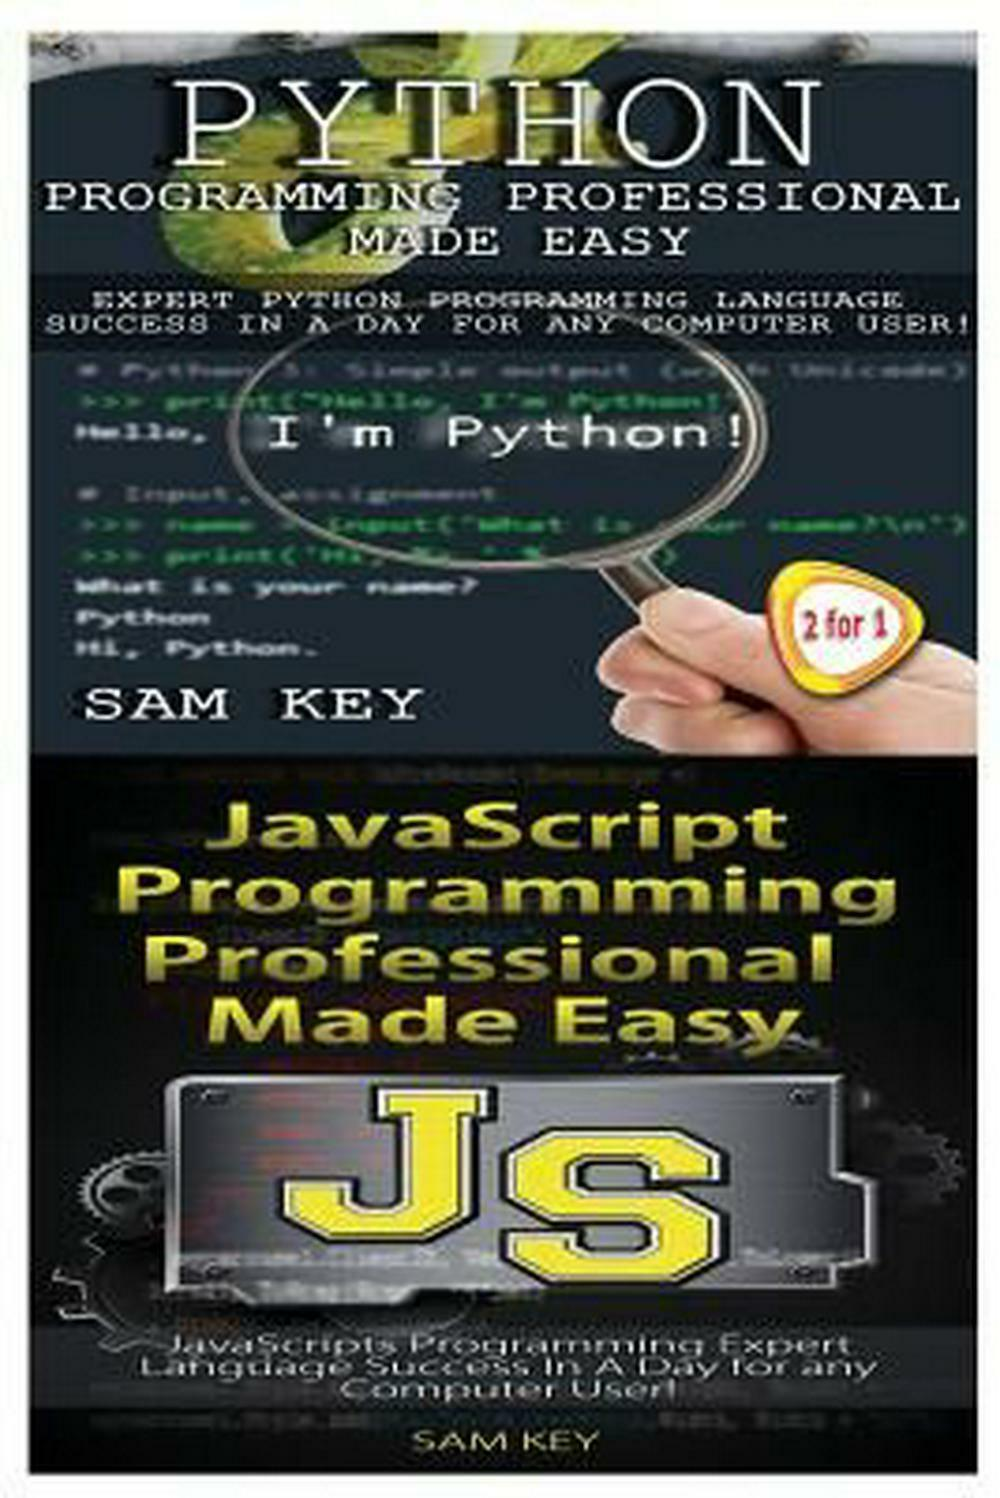 Python Programming Professional Made Easy & JavaScript Professional Programming |